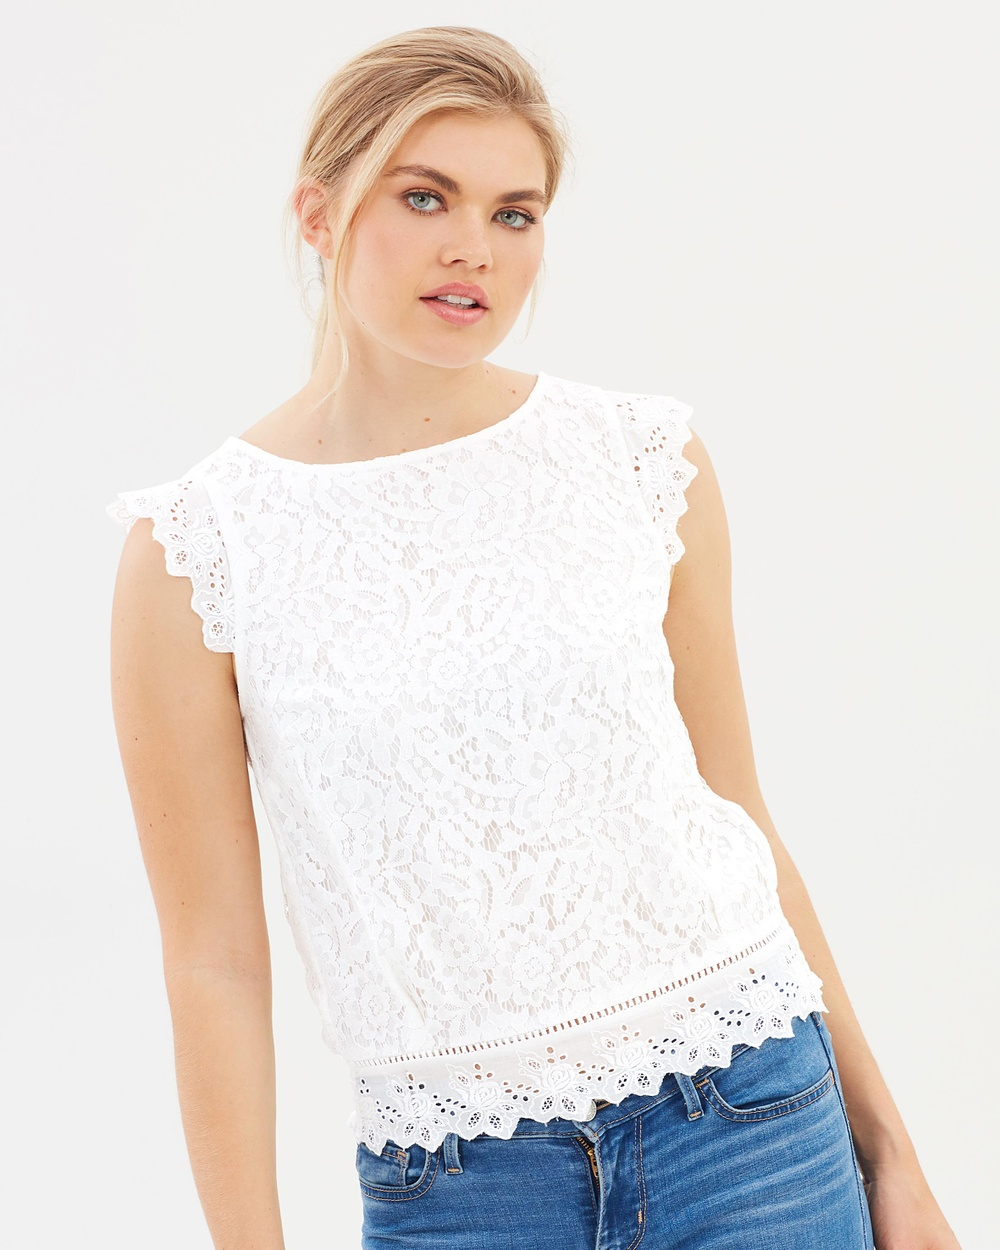 Oasis Lace Broderie Top Tops White Lace Broderie Top